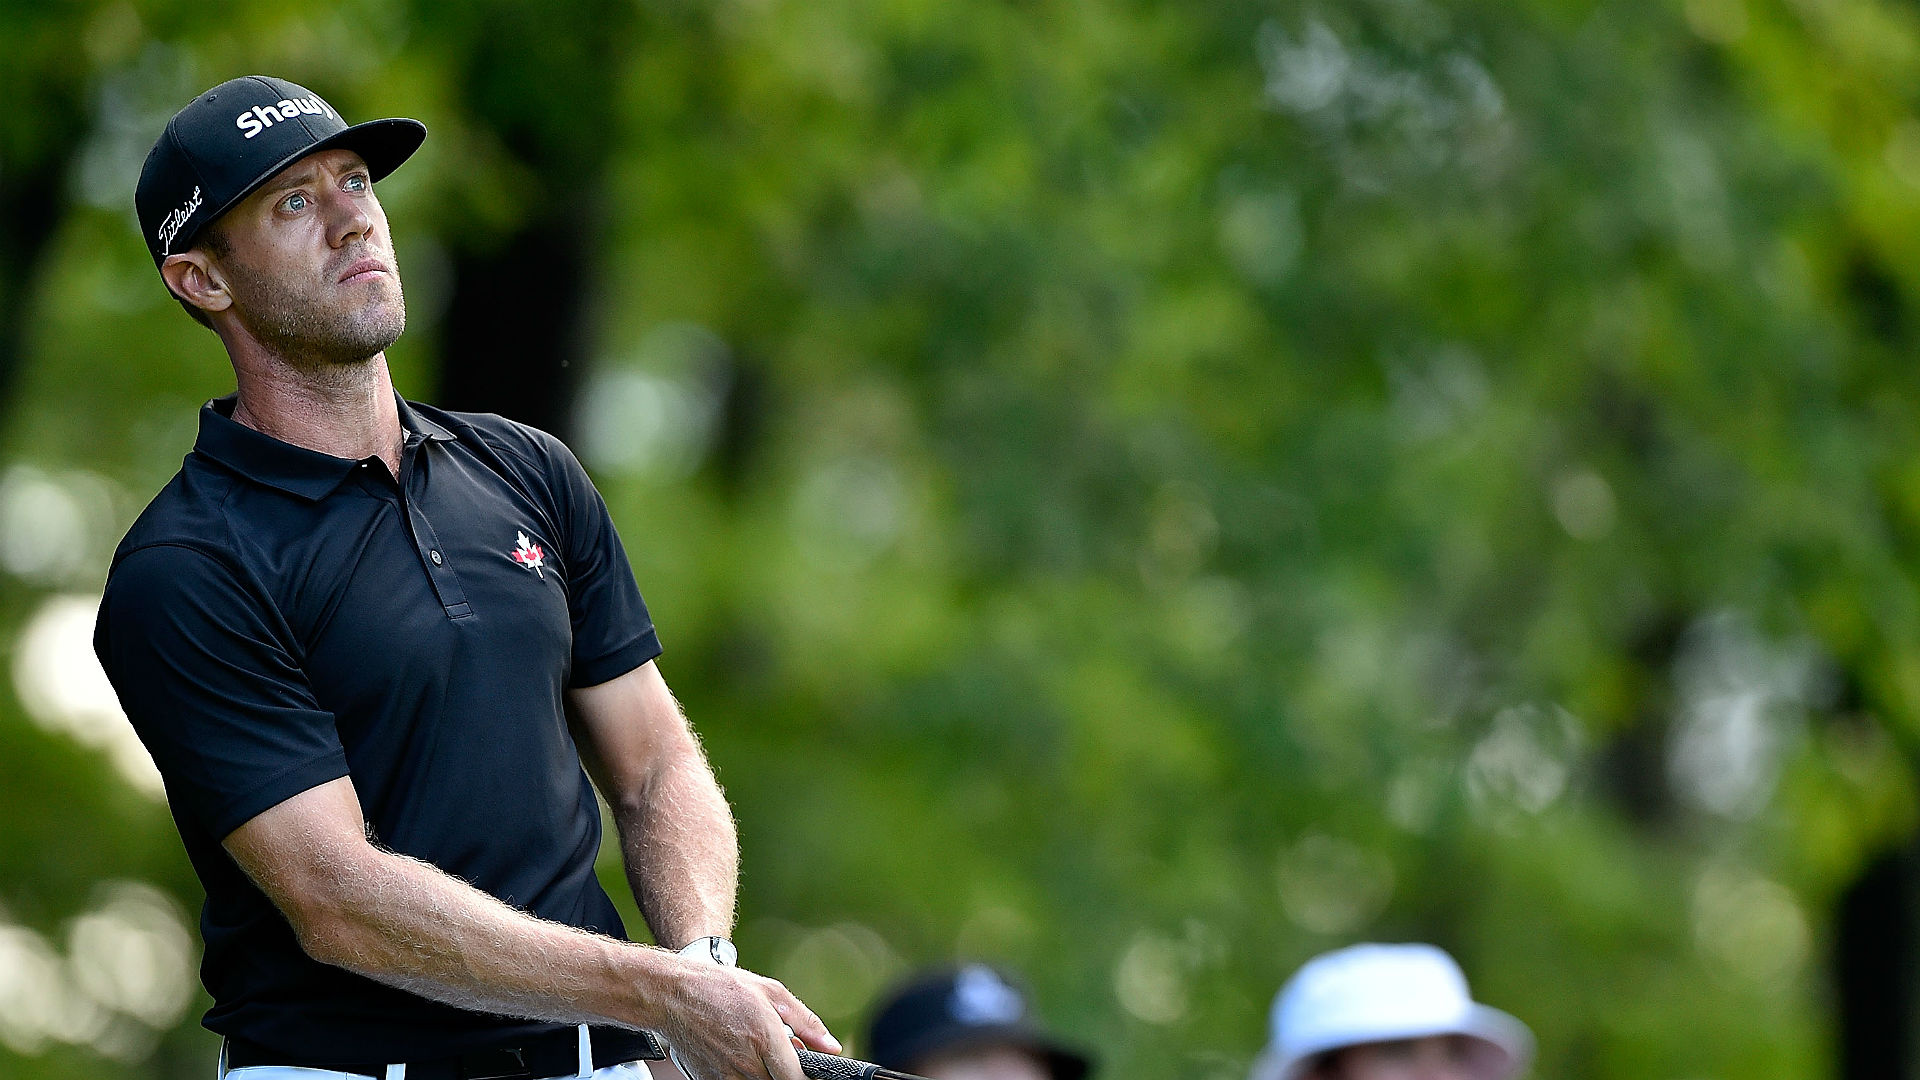 Dizzy spells hinder Kuchar as five share Canadian Open lead